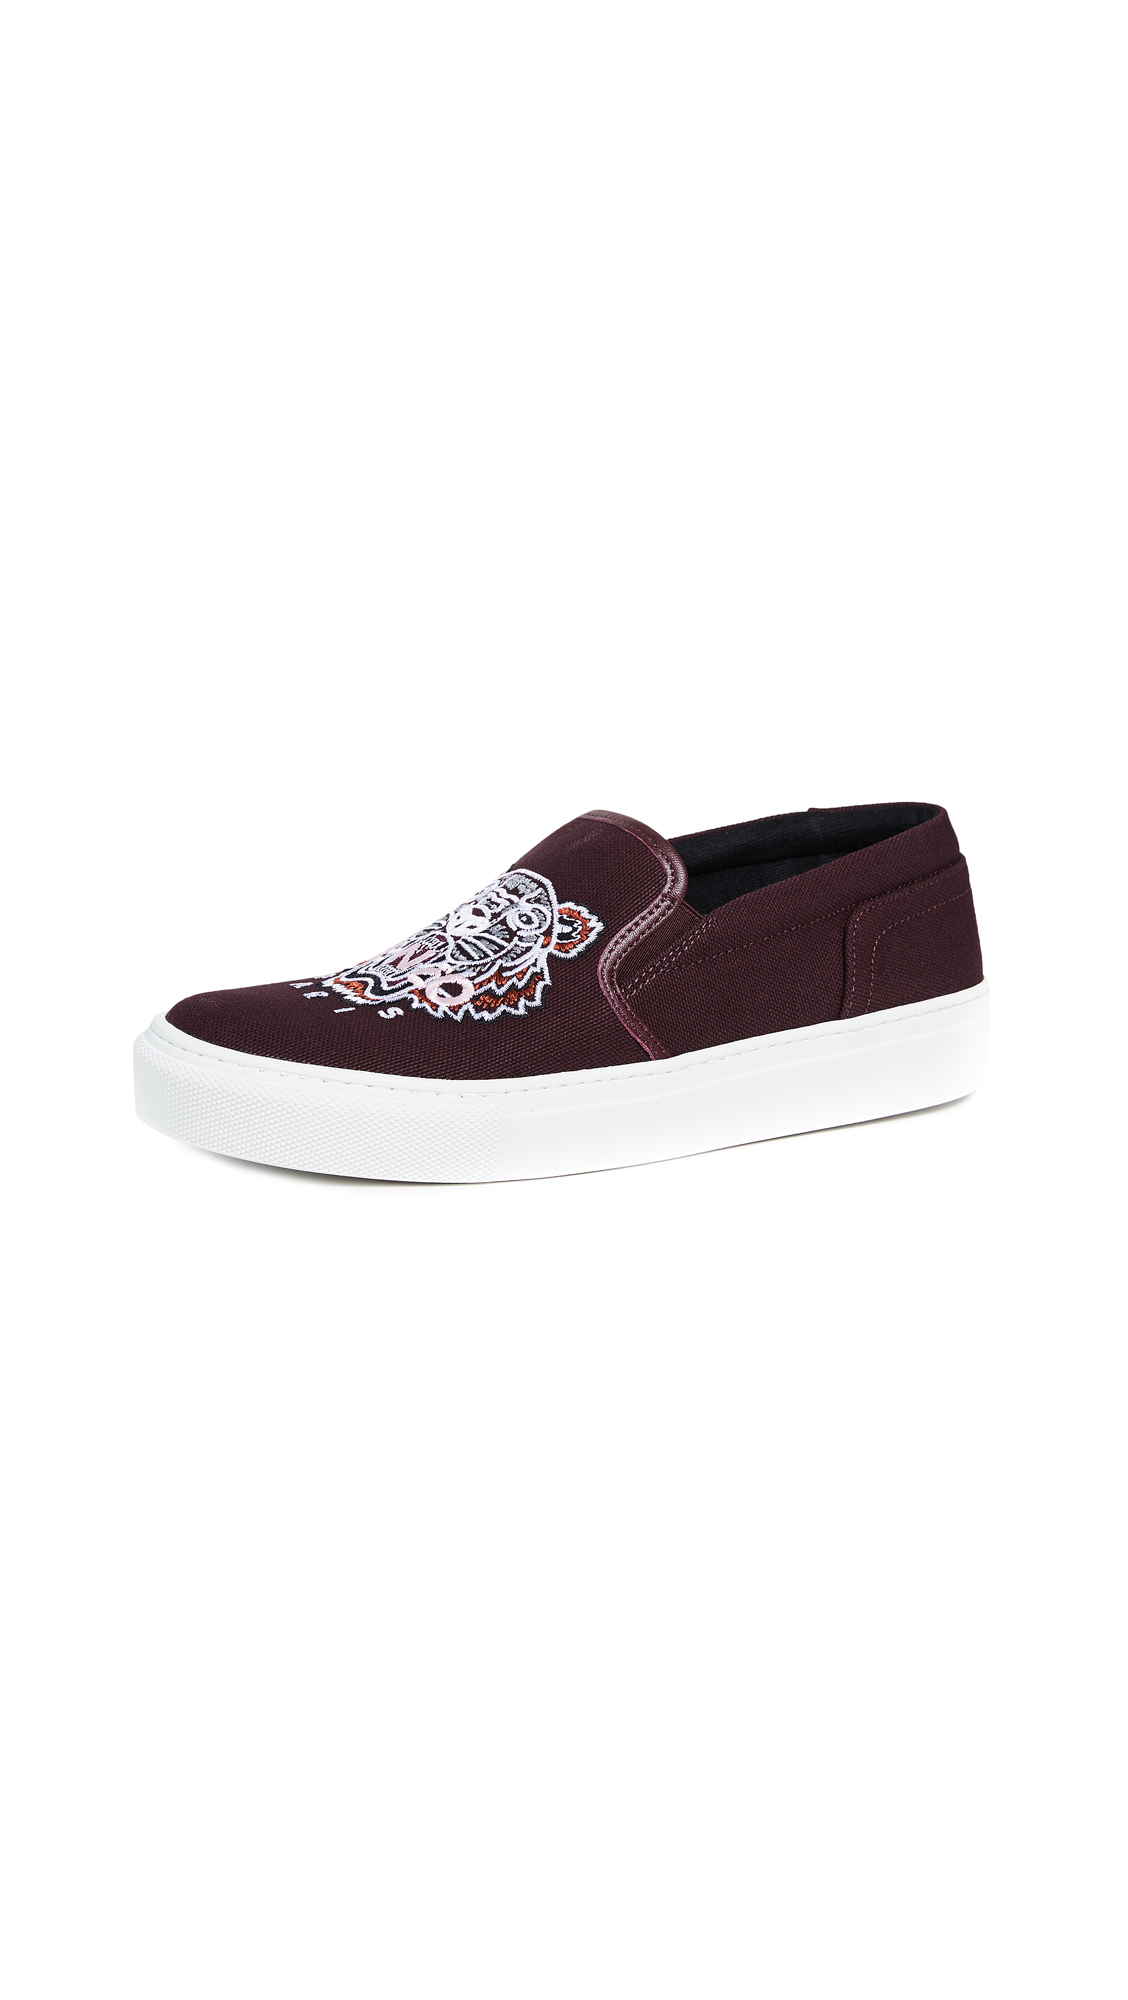 KENZO K-State Tiger Sneakers - Bordeaux